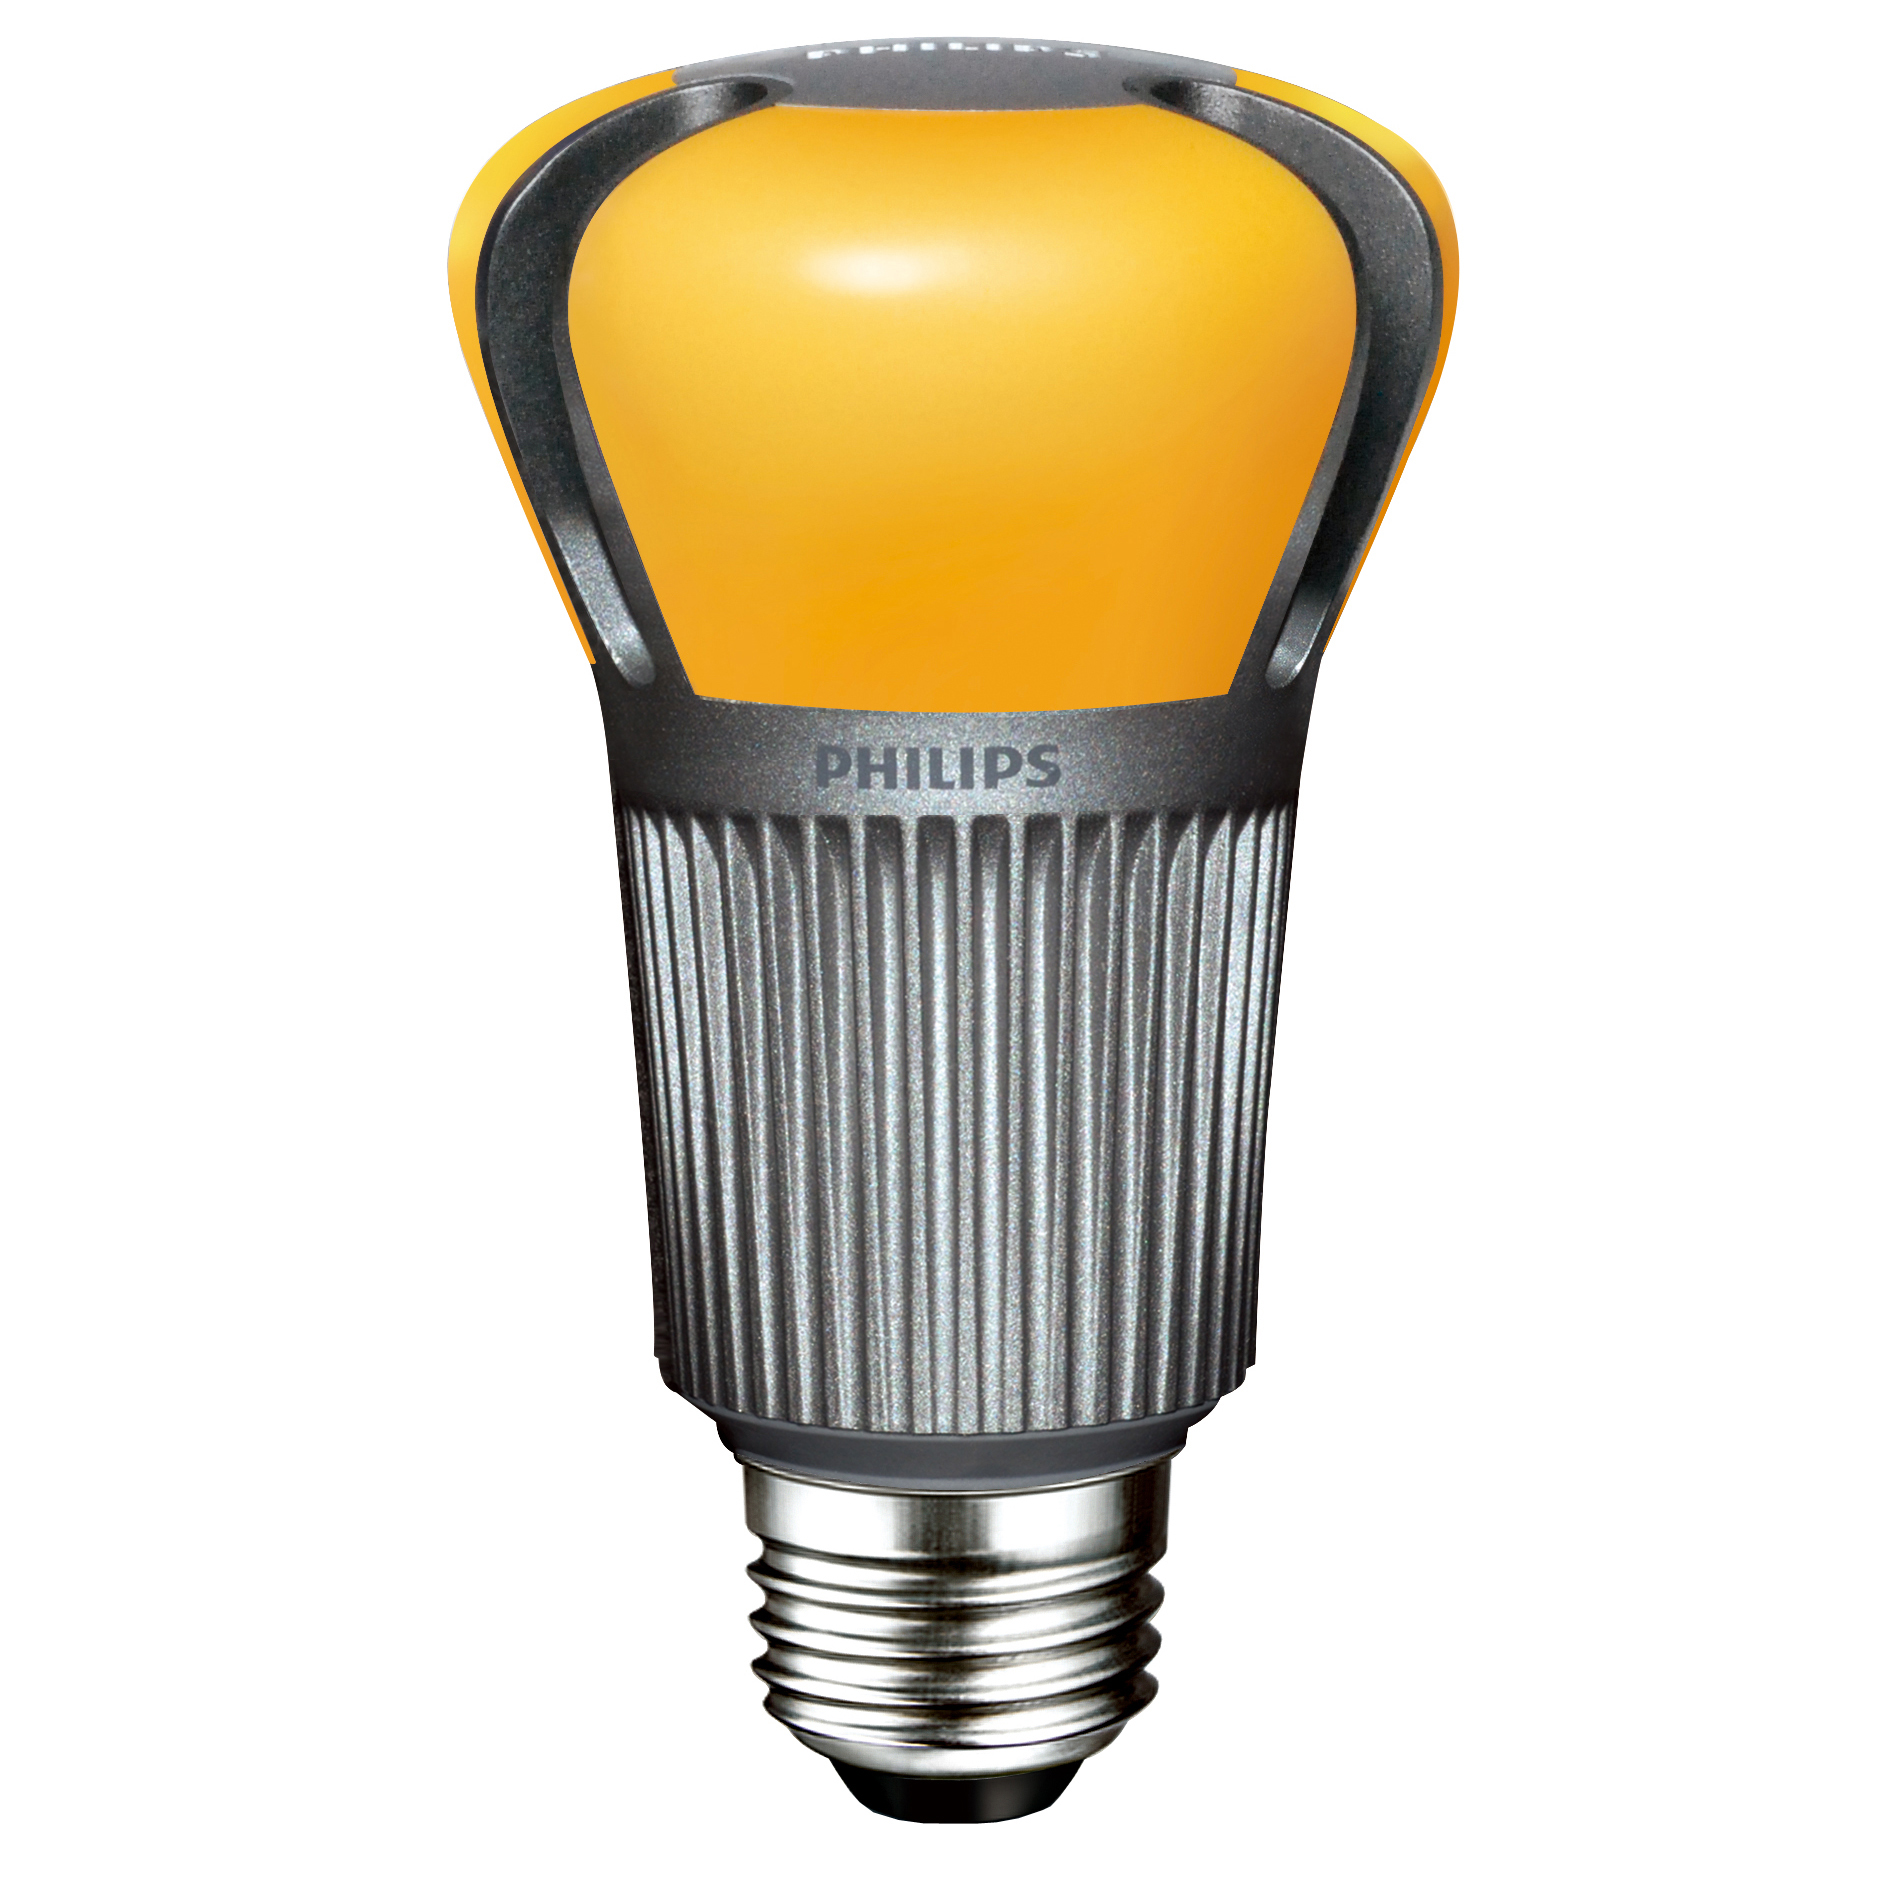 philips lighting takes home the